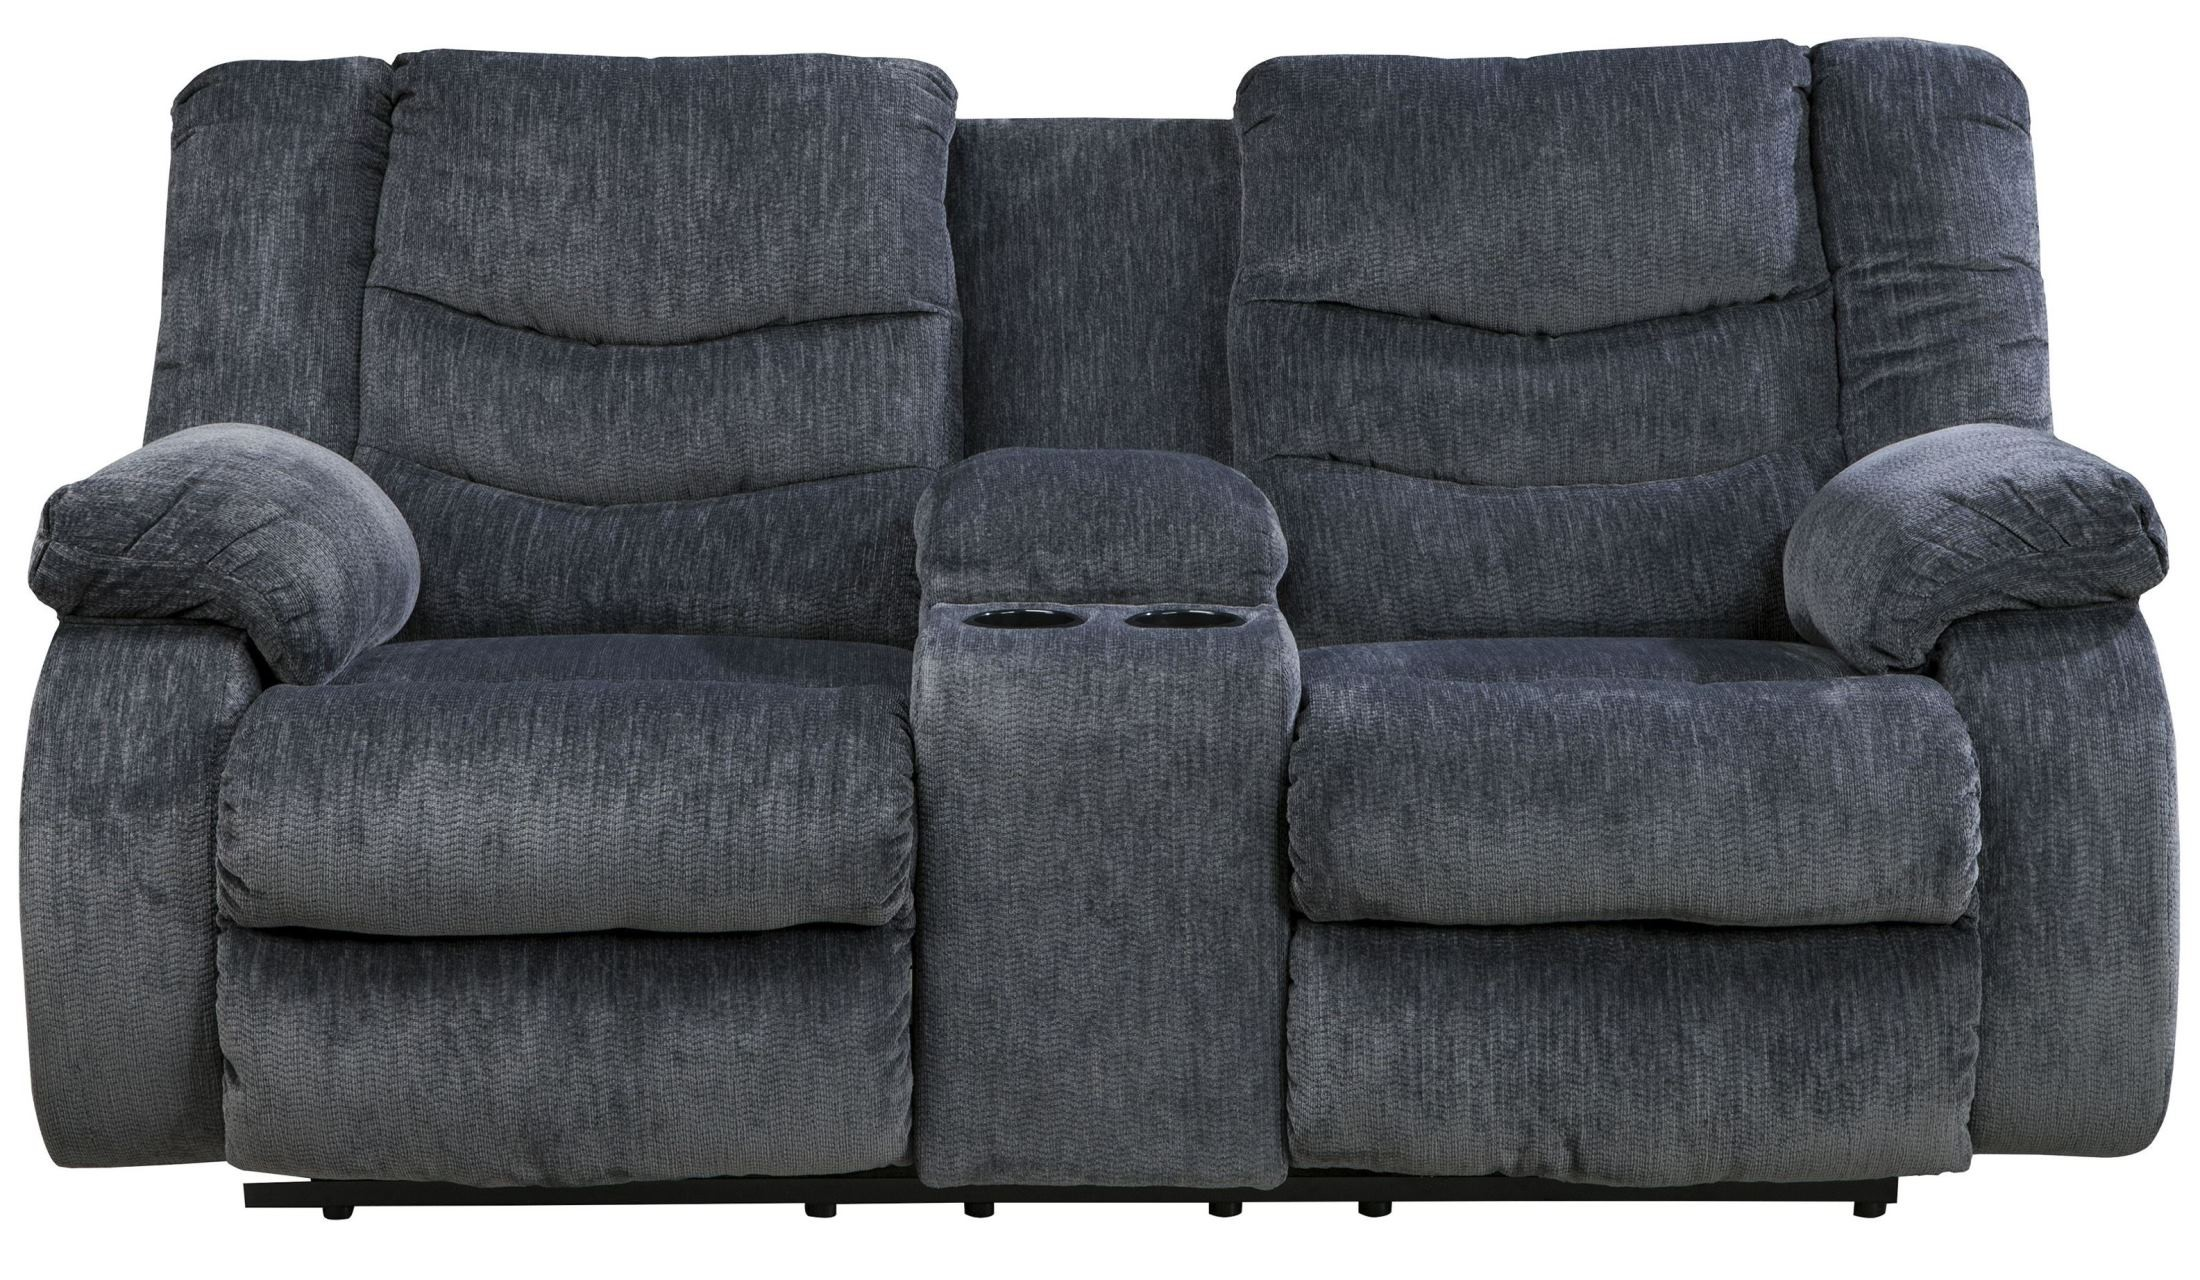 Garek Blue Double Reclining Loveseat With Console From